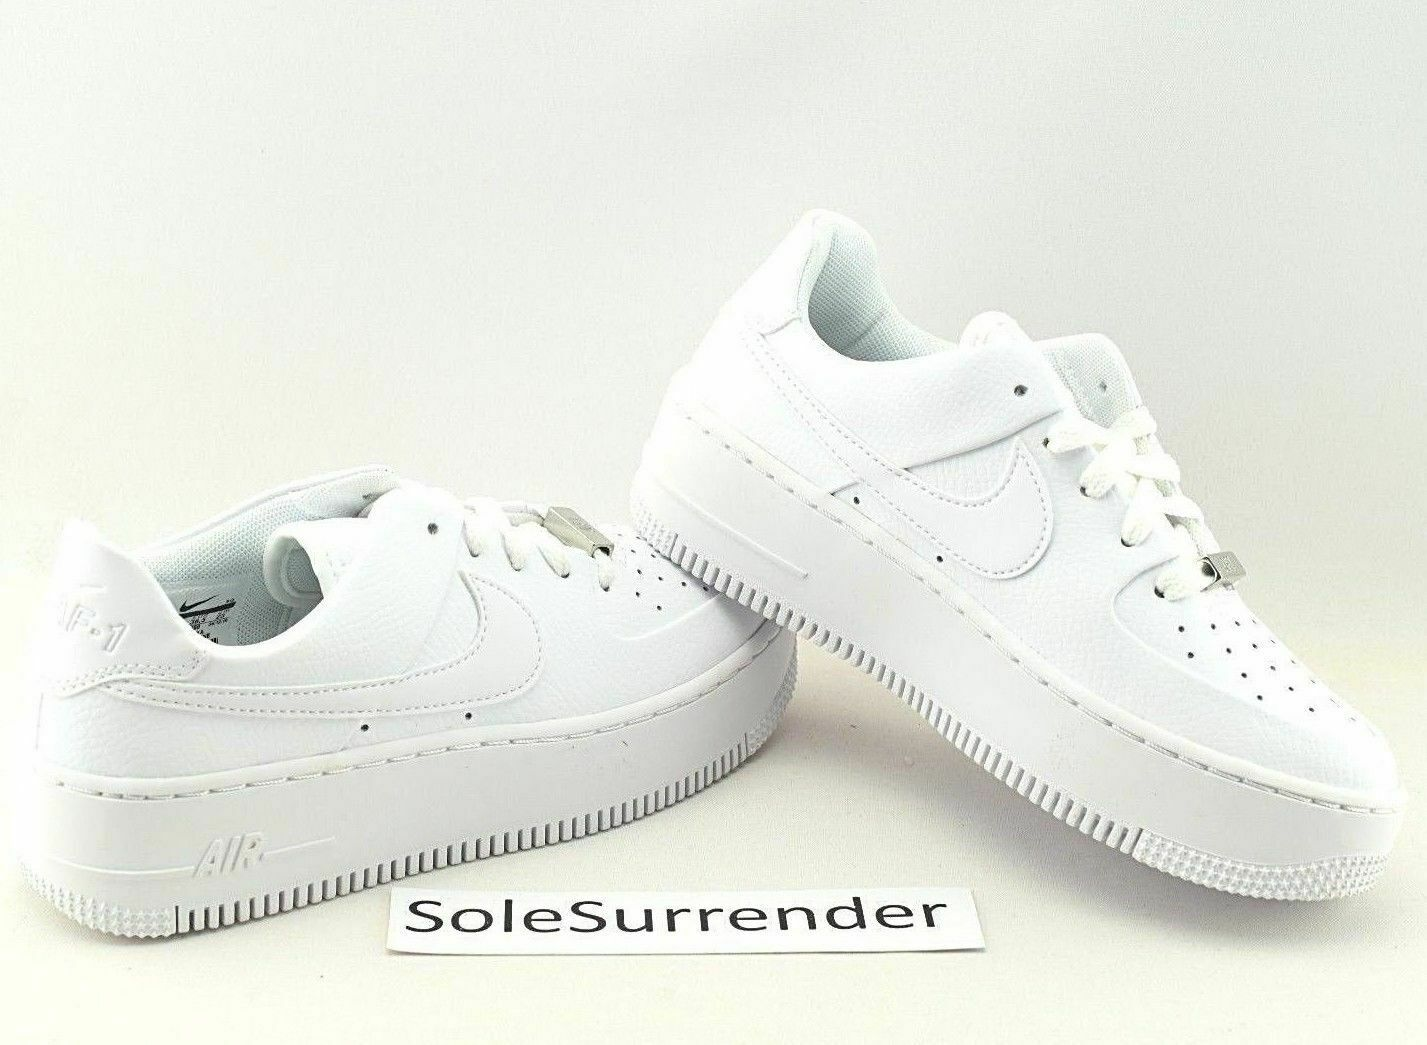 Nike AF1 Sage Low -CHOOSE SIZE - AR5339-100 Triple Whiteout Wedge Air Force 1 XX